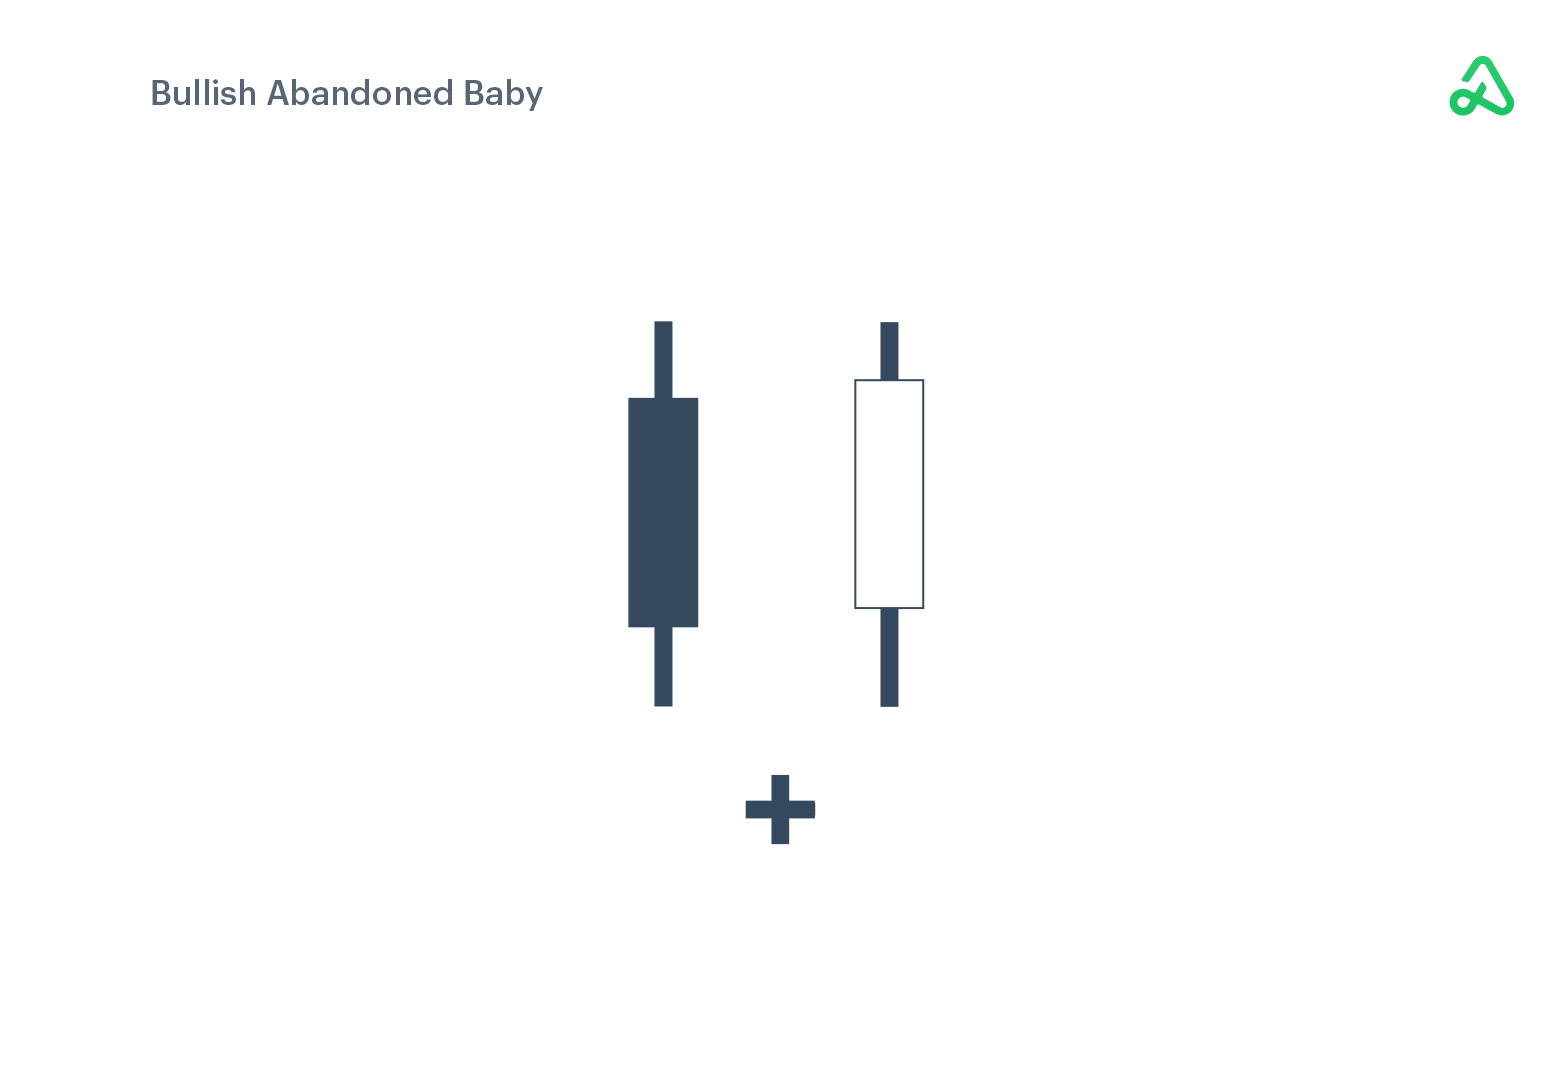 Bullish Abandoned Baby example image